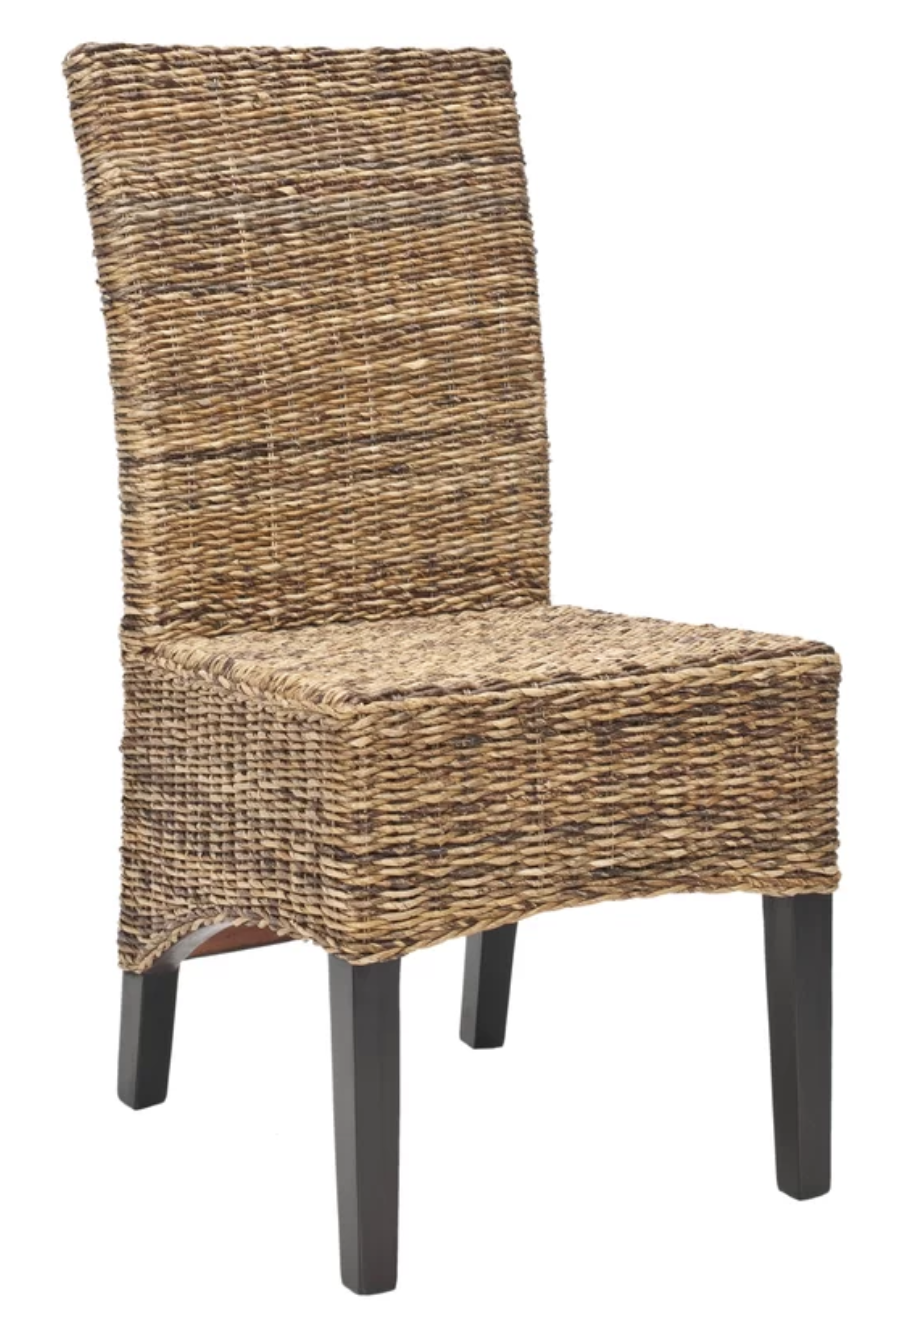 safavieh-charlotte-side-chair